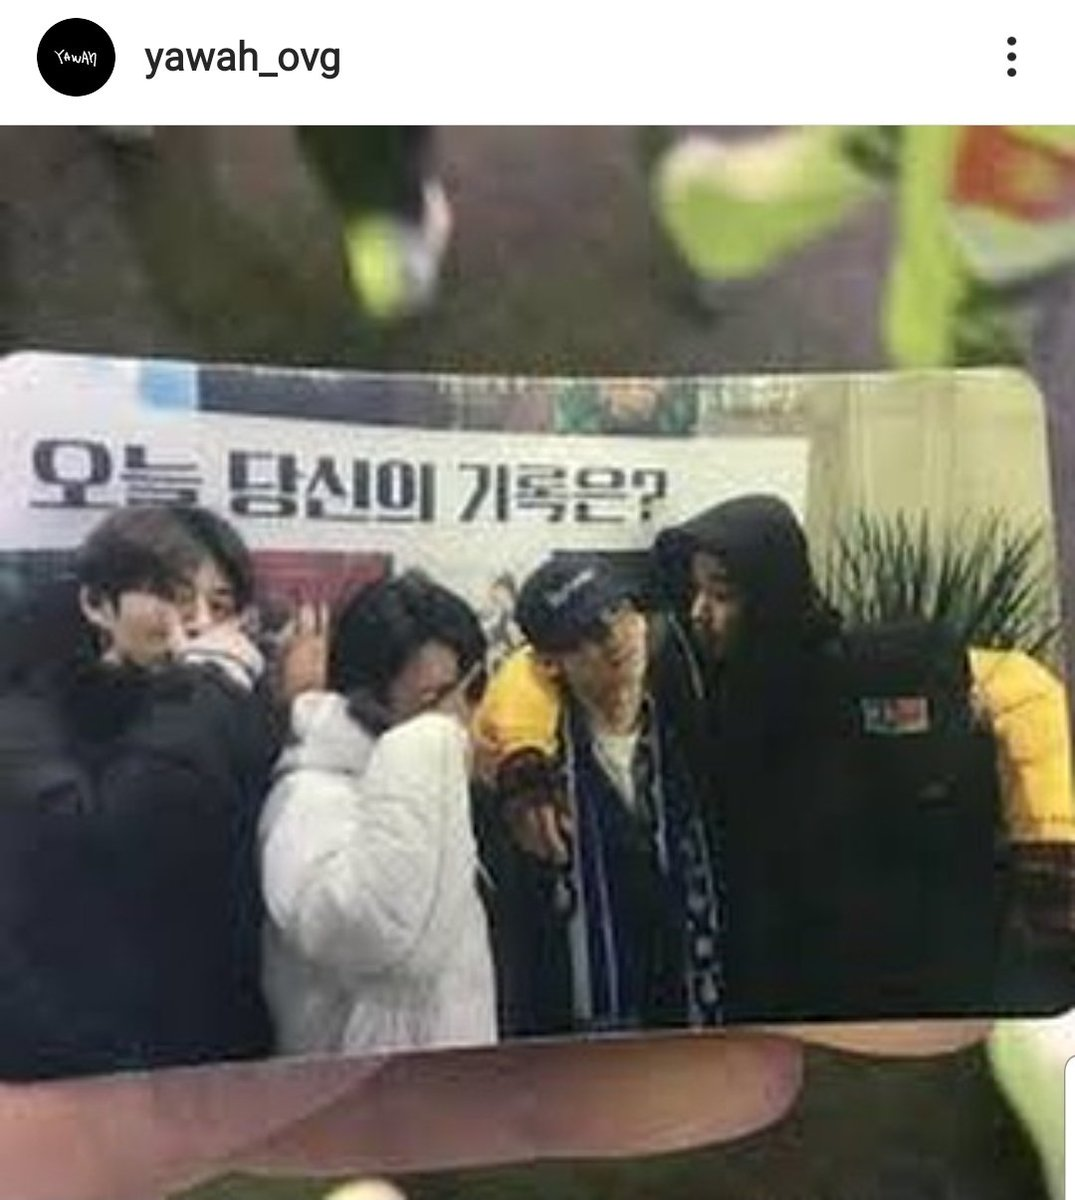 I used to hate him&Idk why but he knew hanbin more than anyone,he's w/ him without camera&probably witnessed those times when B.I was depressed thats why he said that B.I is living a hard life day by day but still smiling&now he's the only one who upload a pic of him after June12 <br>http://pic.twitter.com/qtbddcC4QG